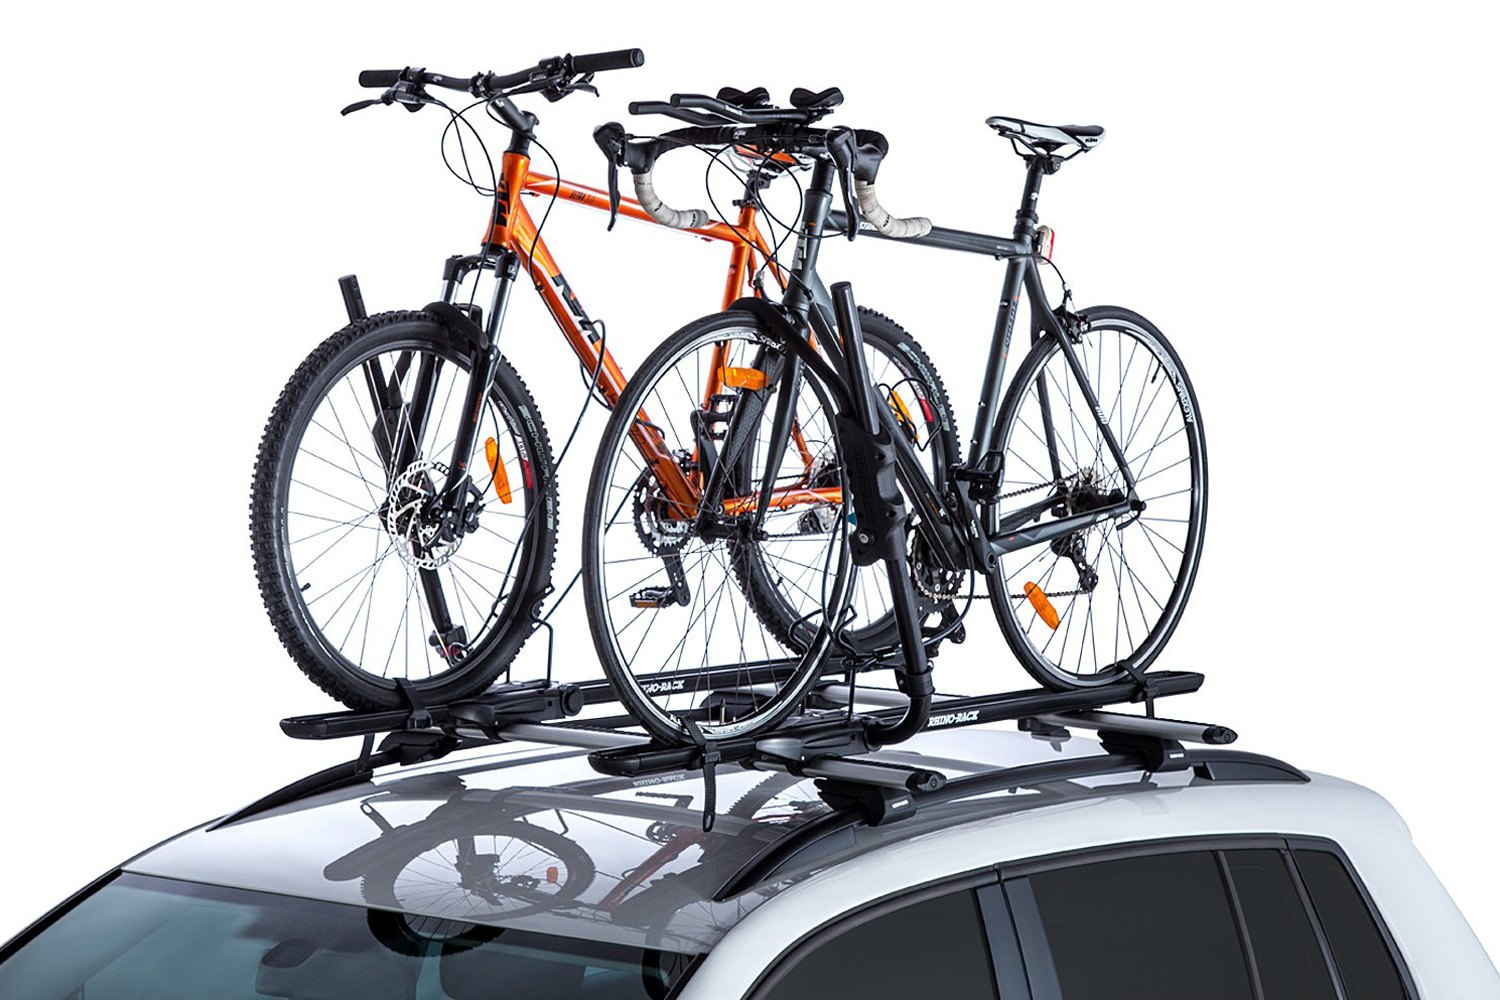 roof youtube mounted carrier accessories rack volvo bike watch fork